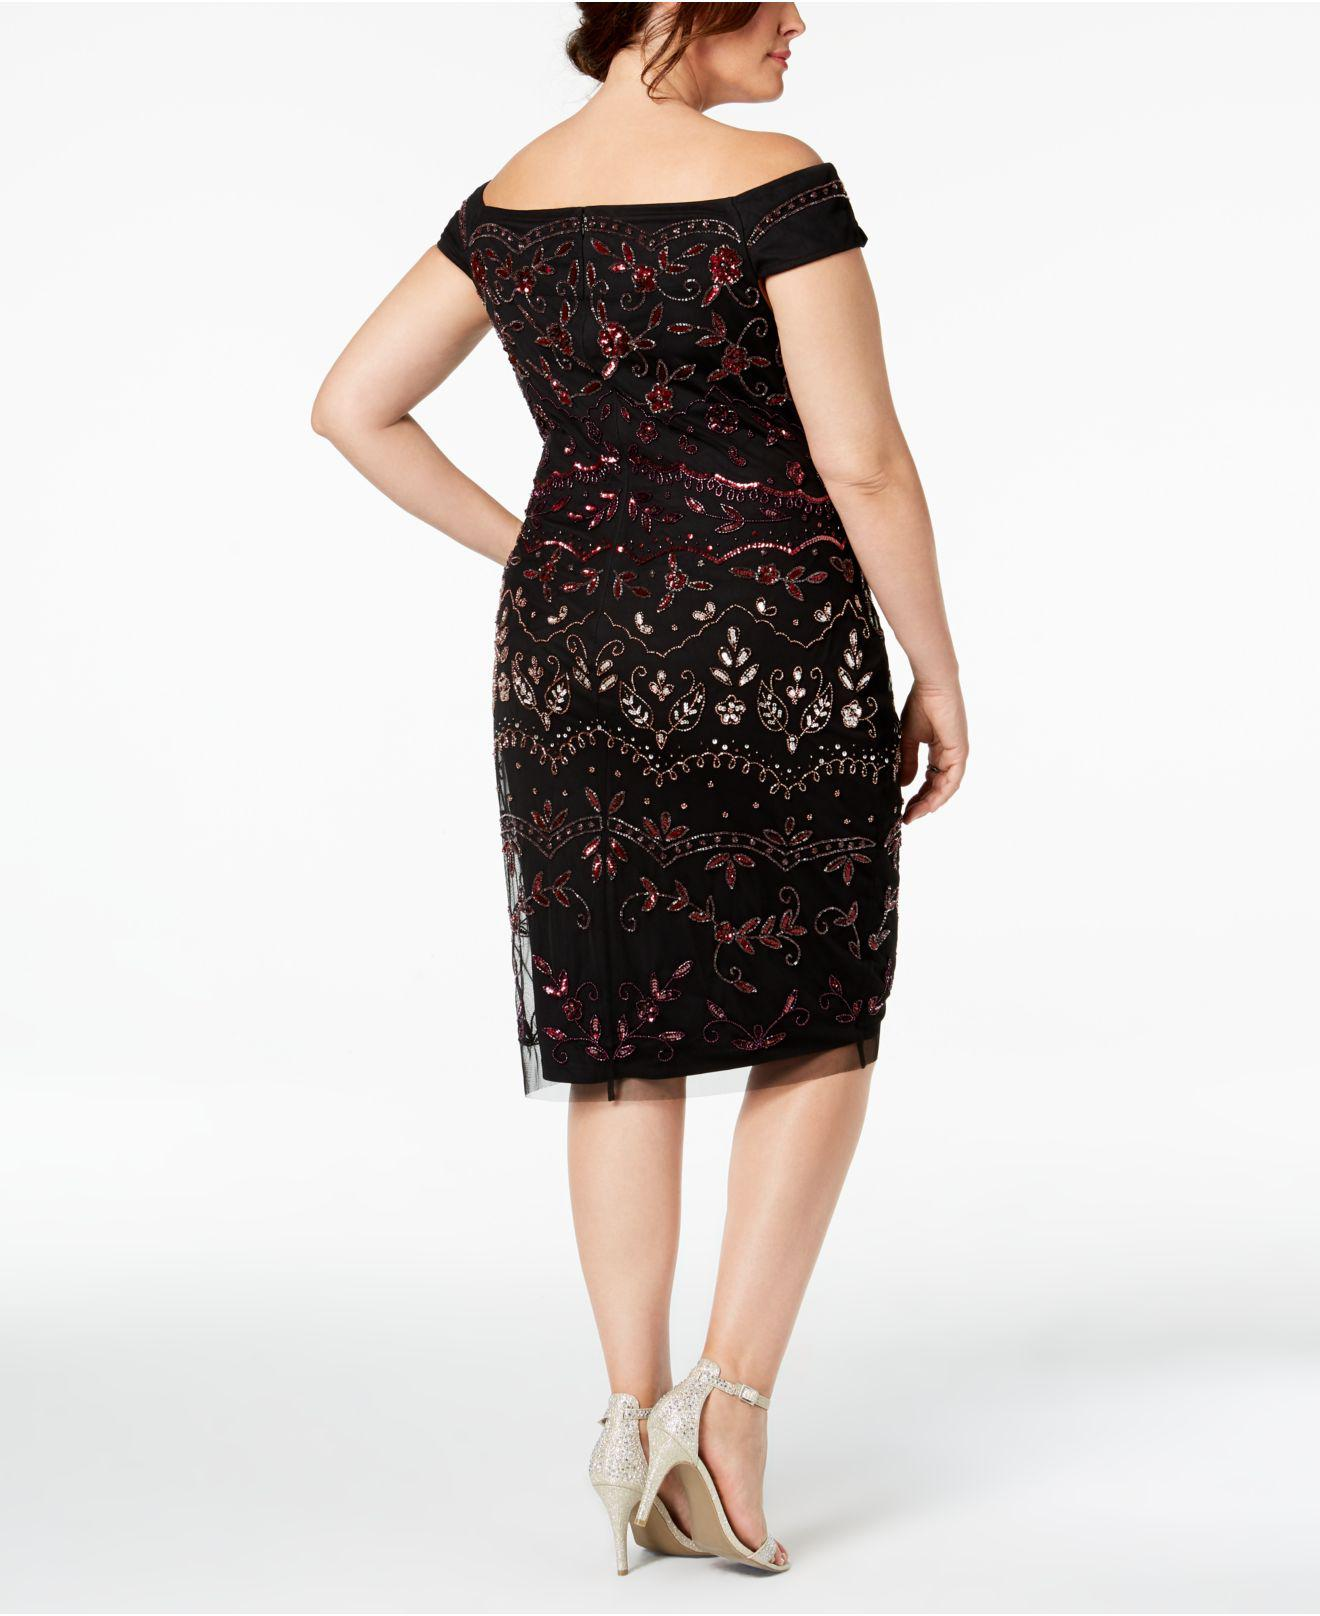 17ceeffe82 Adrianna Papell Plus Size Embellished Off-the-shoulder Dress in Black - Lyst